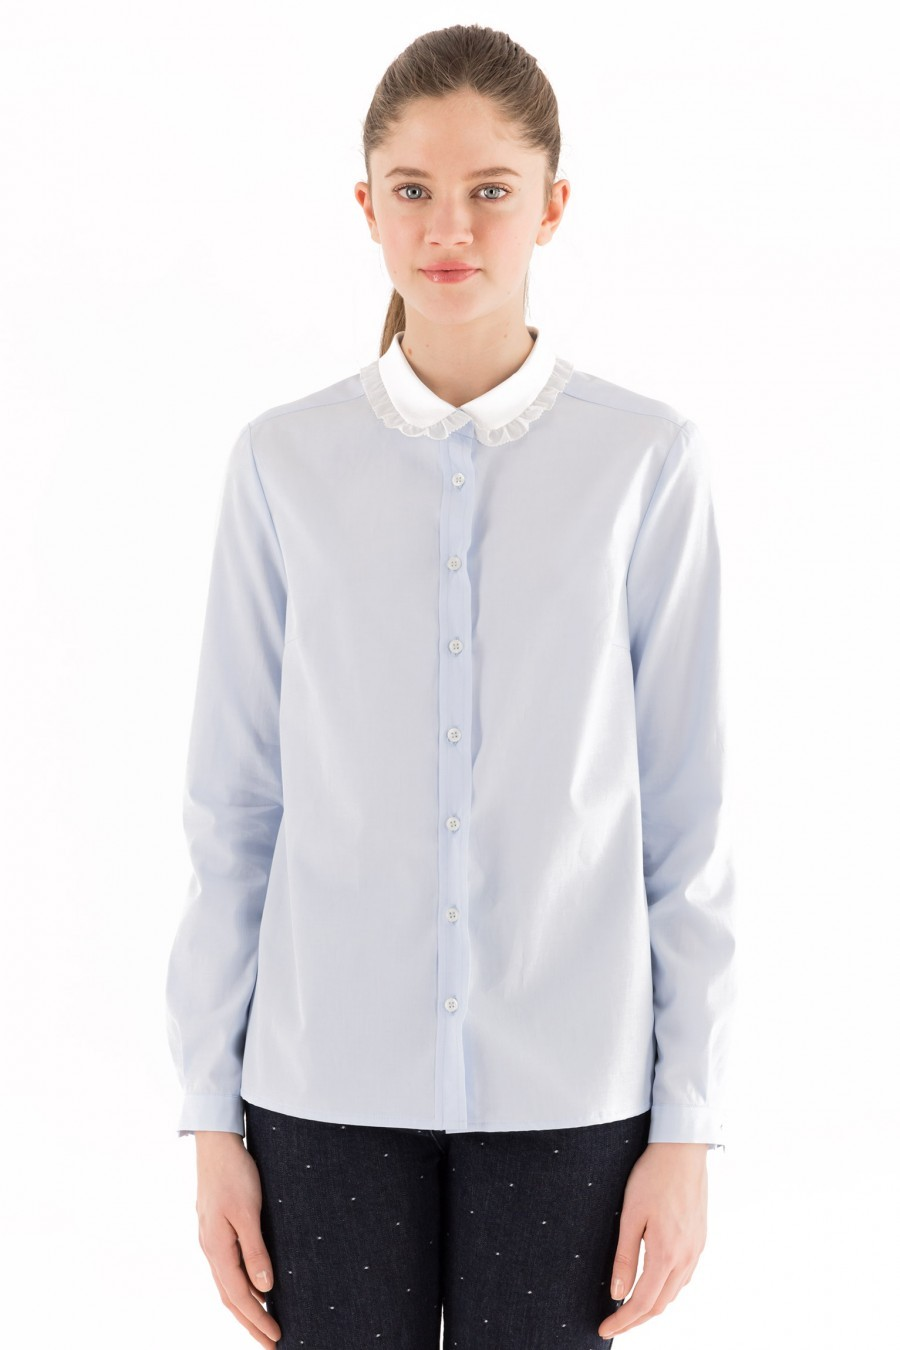 Light blue Lazzari shirt white collar